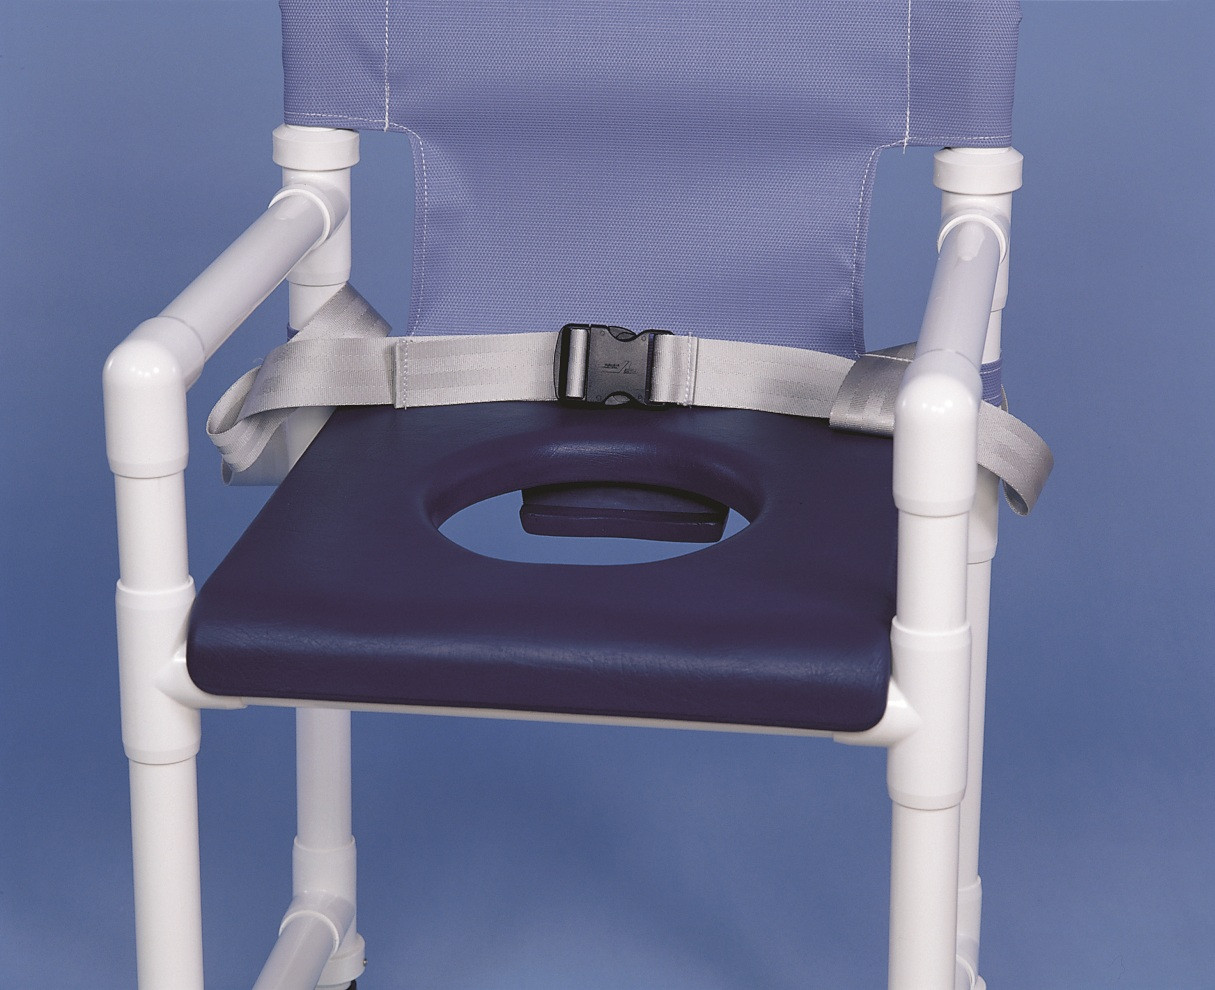 Pvc Shower Chair Seat Belt For Ipu Shower And Commode Chairs Careprodx